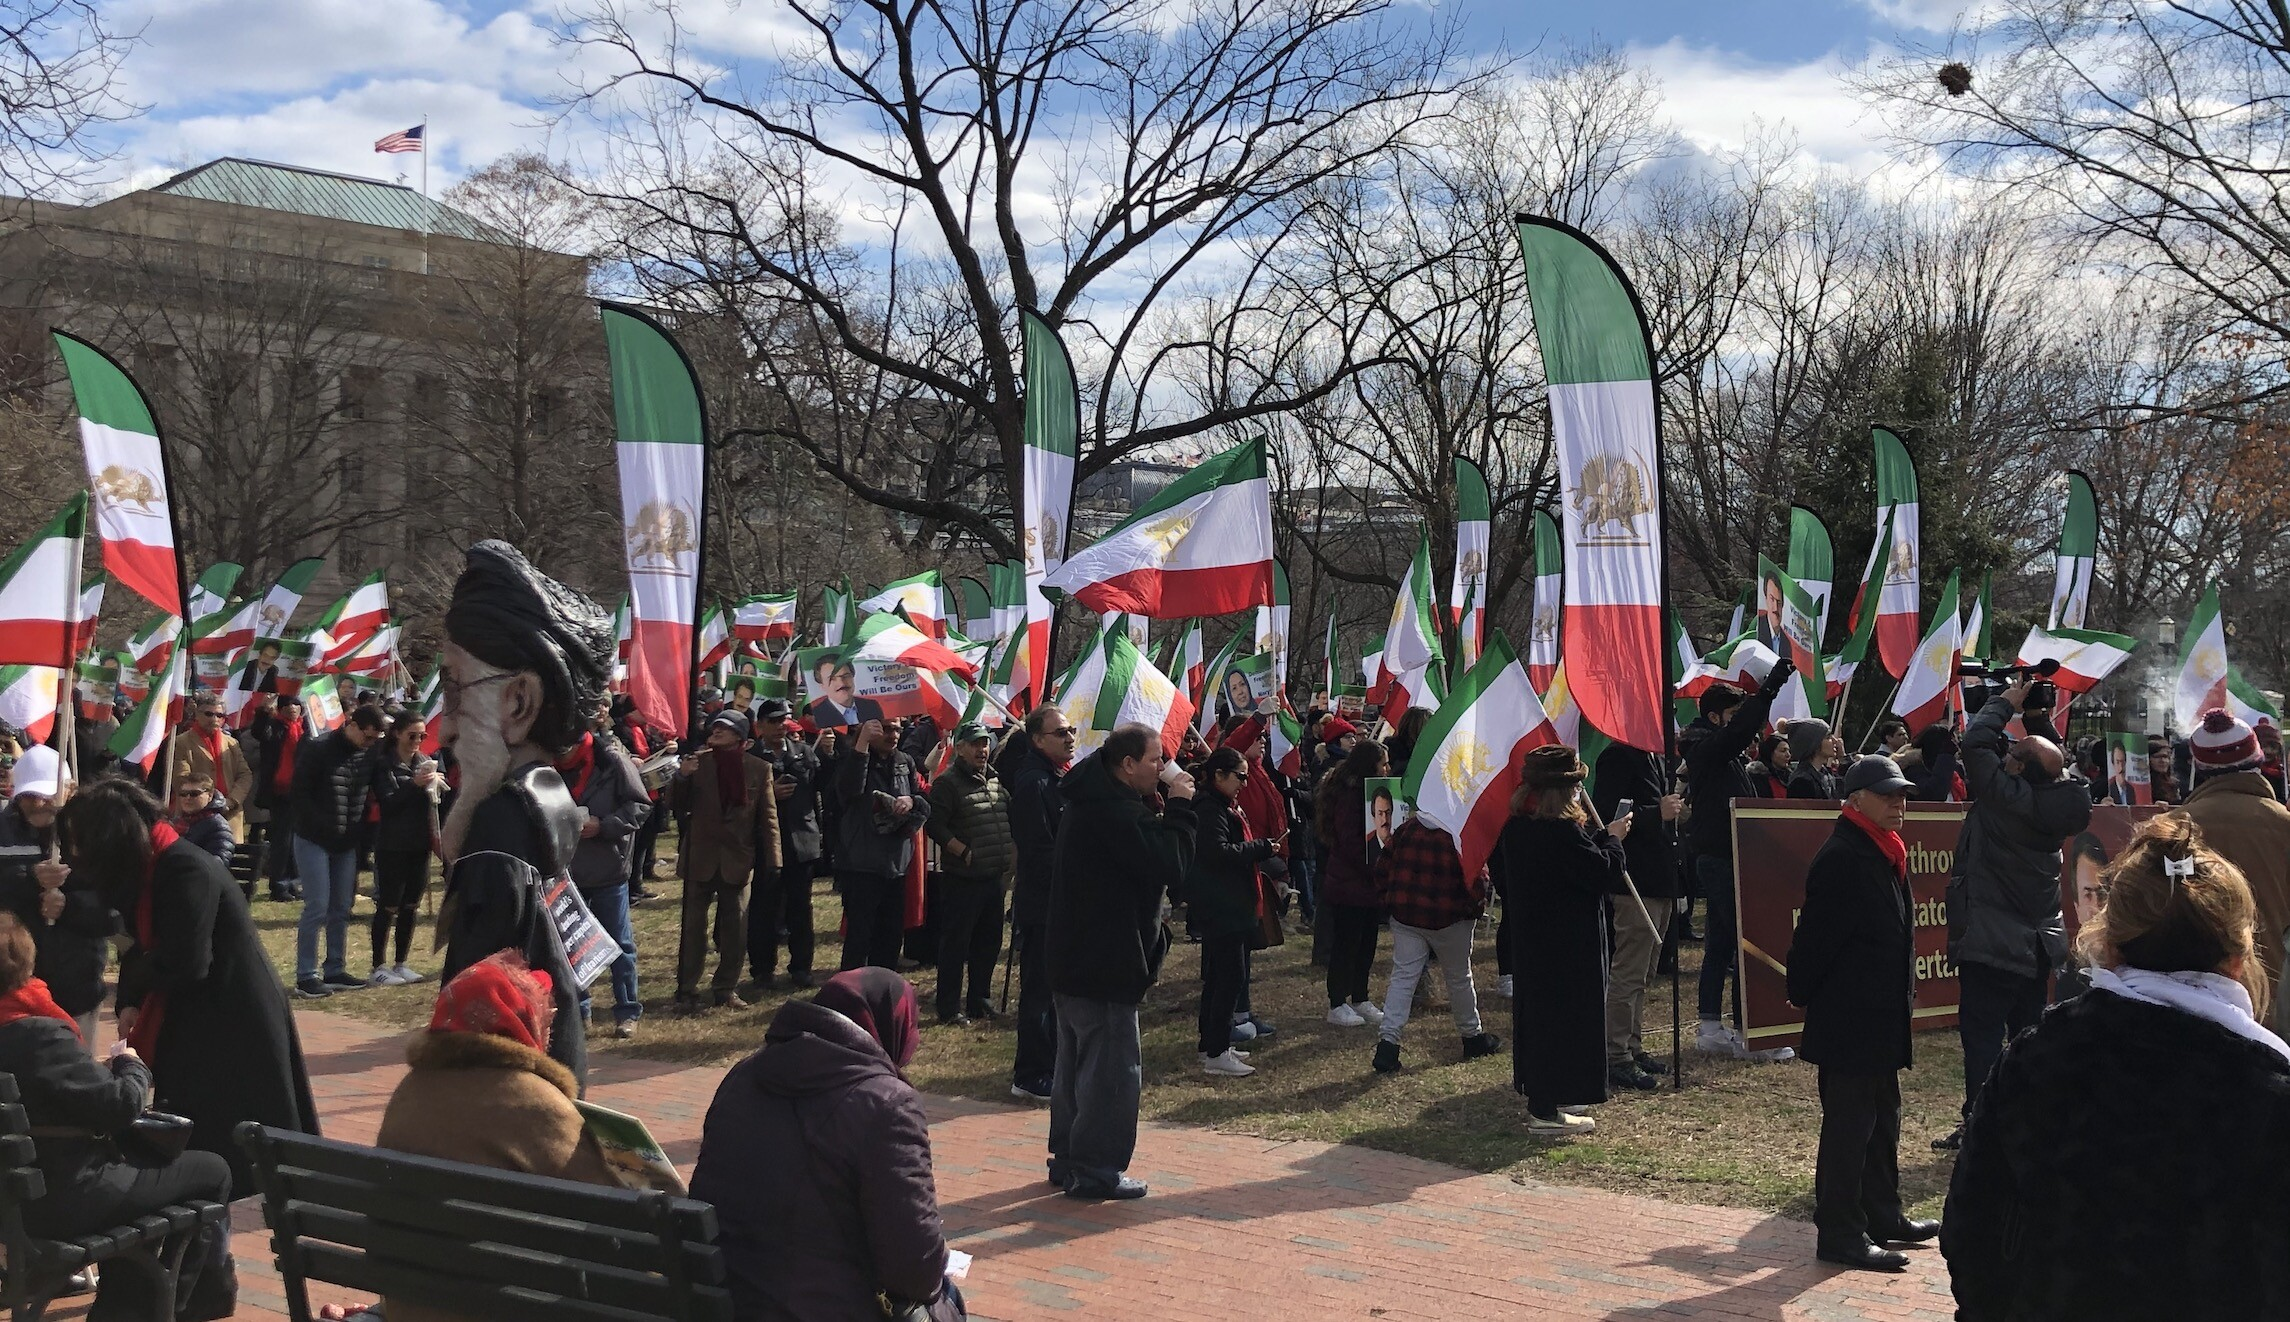 People in Washington, D.C., attend a demonstration against the Iranian government.